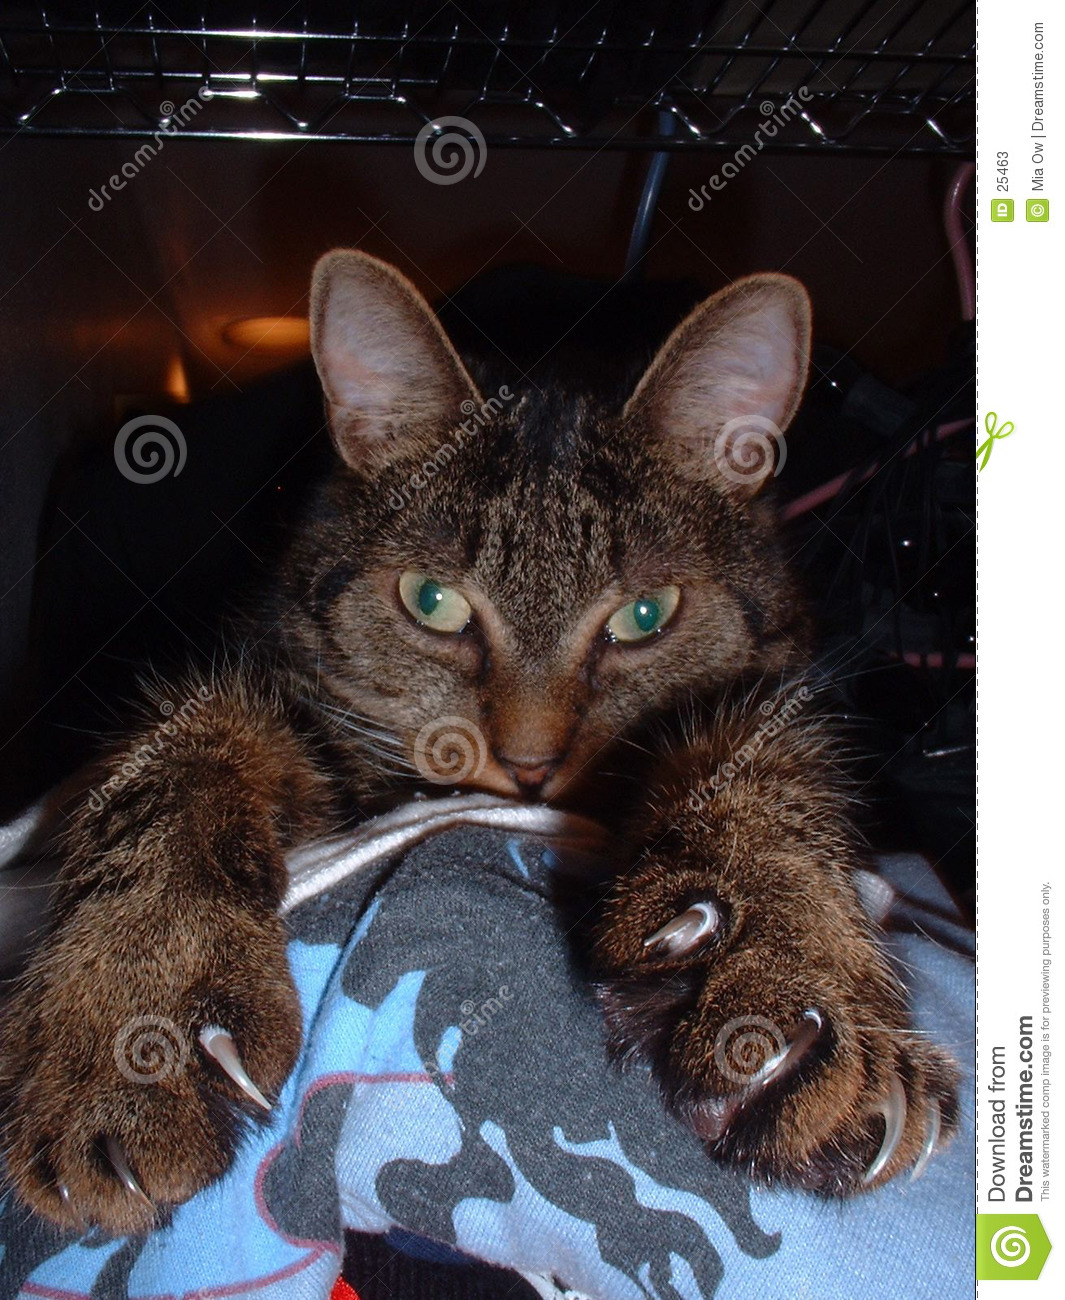 Cat with claws 2